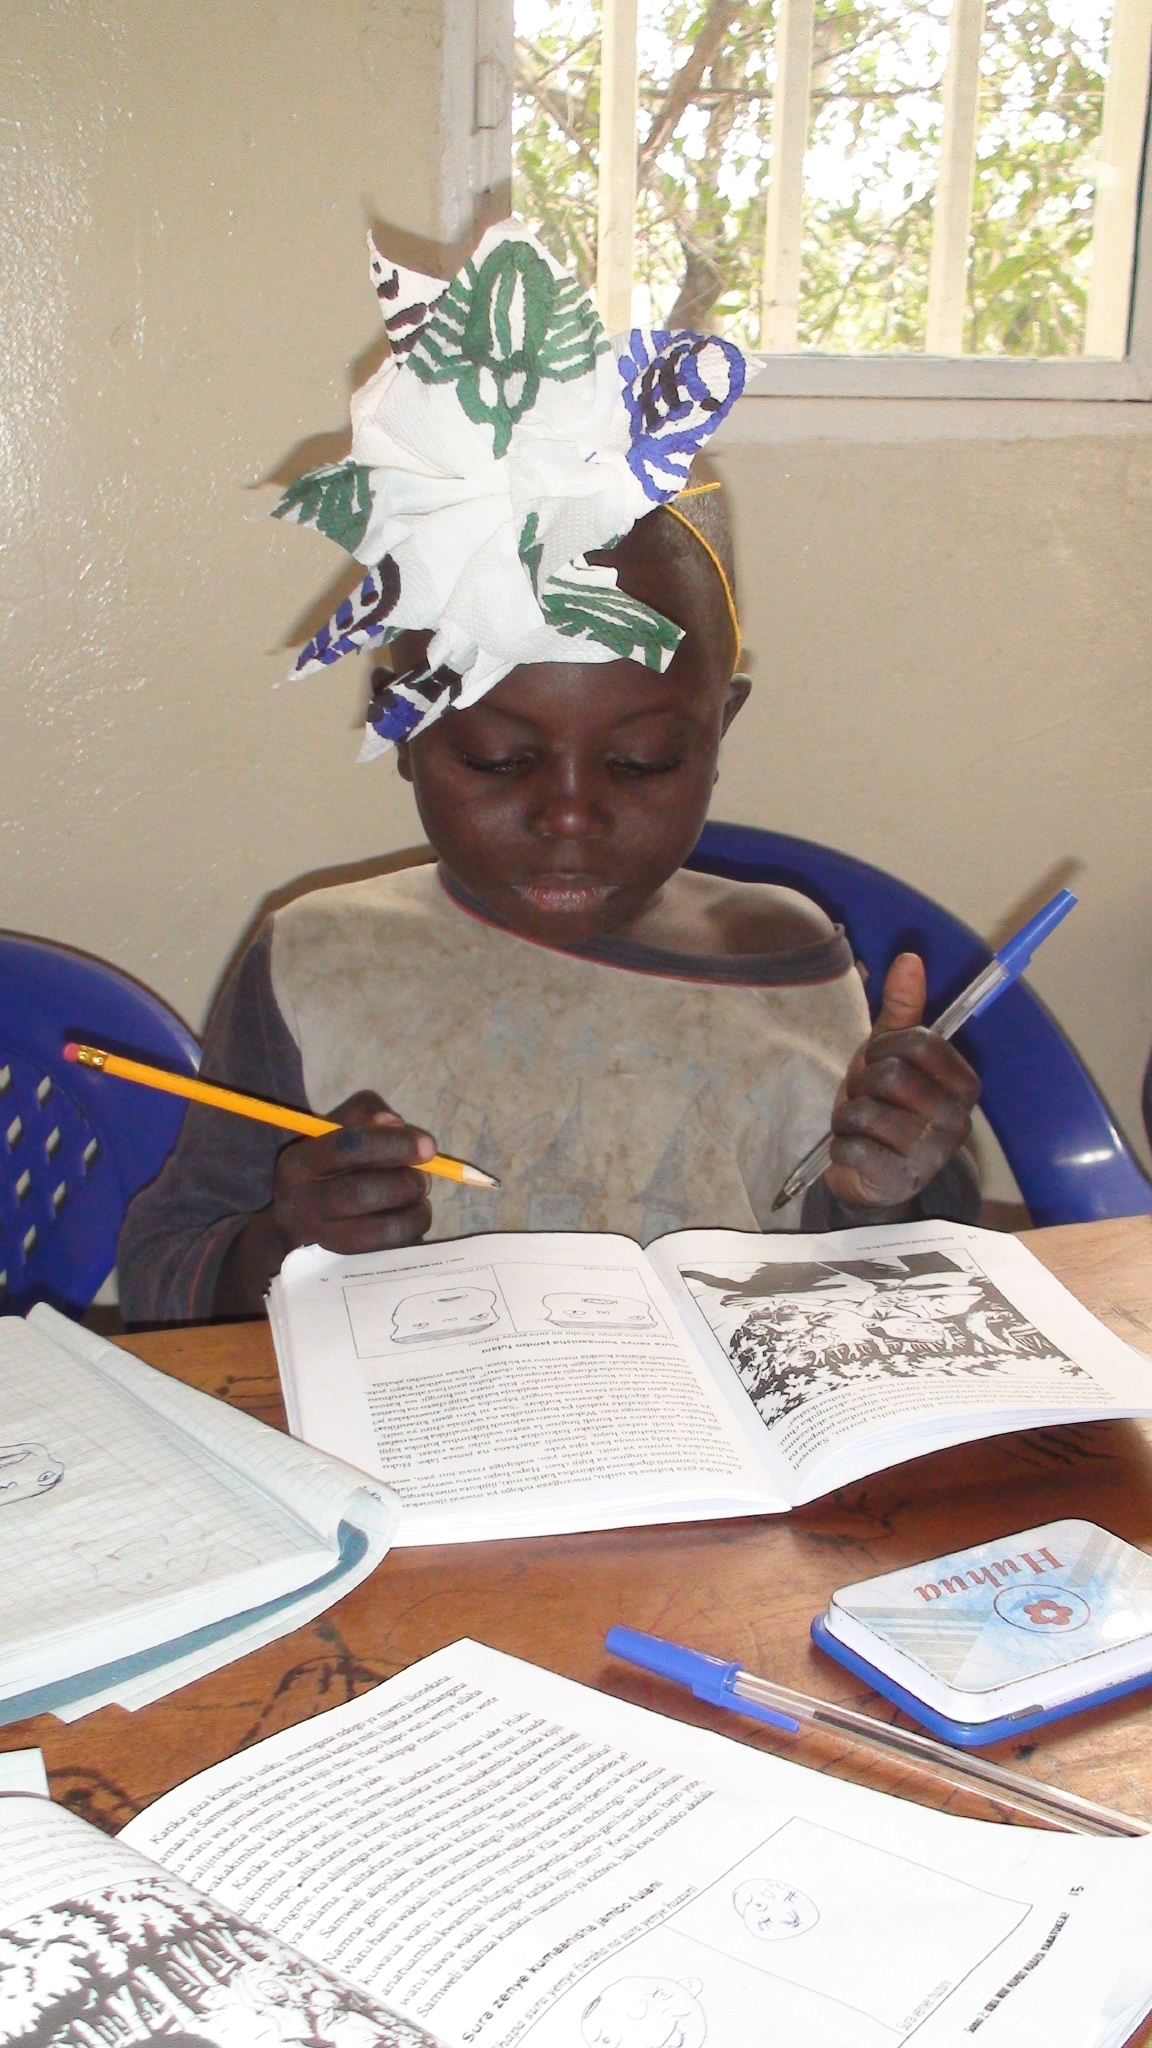 As the youngest participant, Dieubon eagerly engages in all activities.